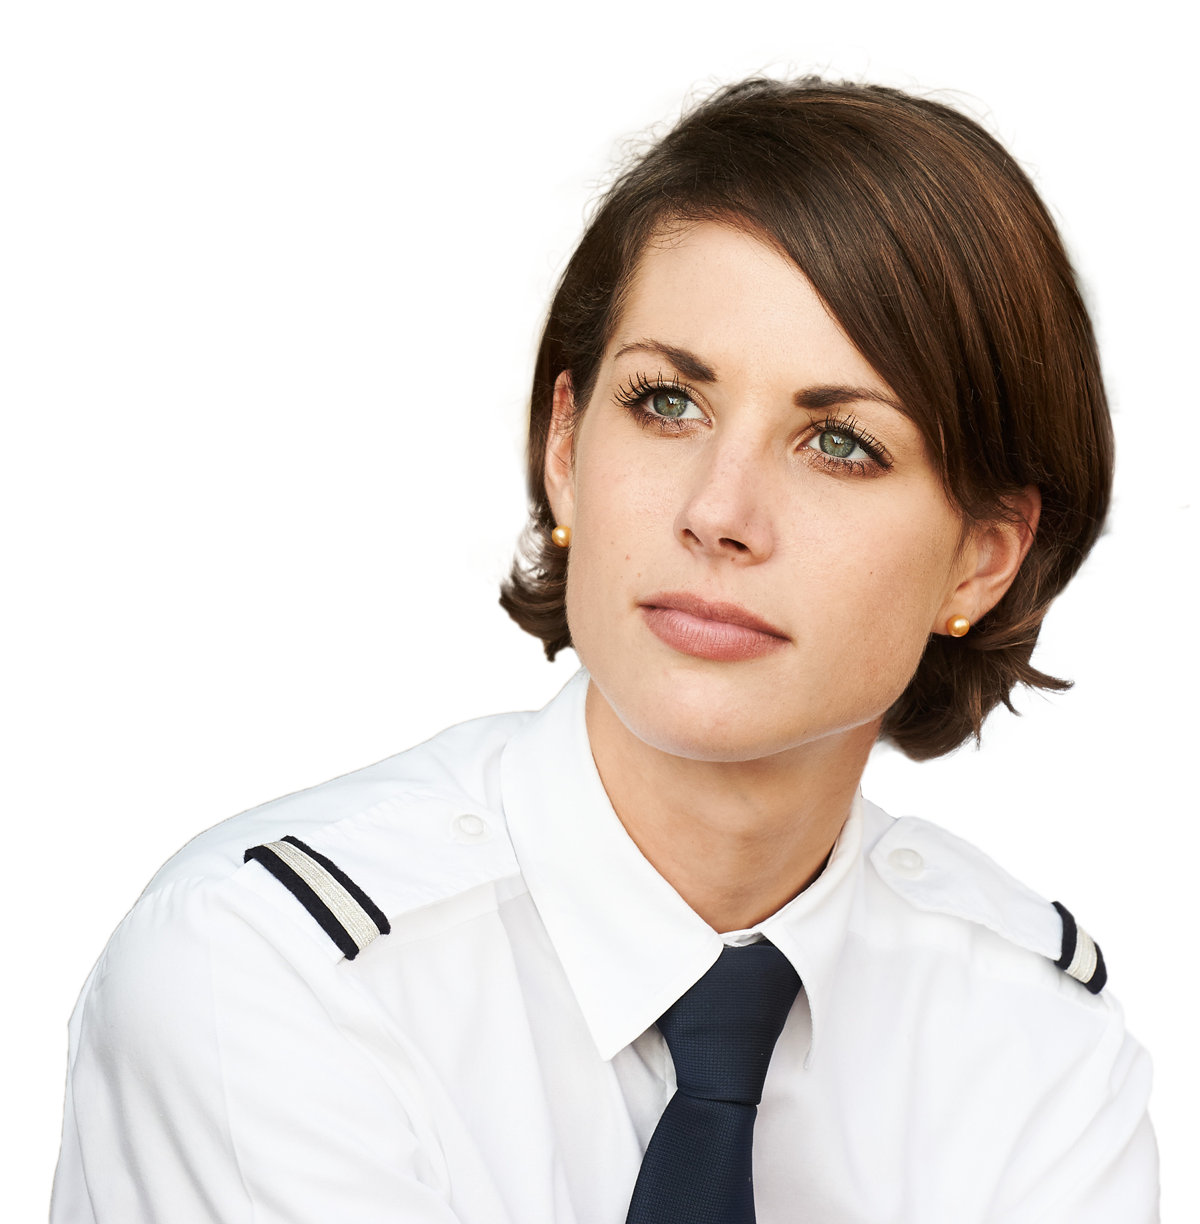 case study lms blended learning kundenreferenz lufthansa aviation training